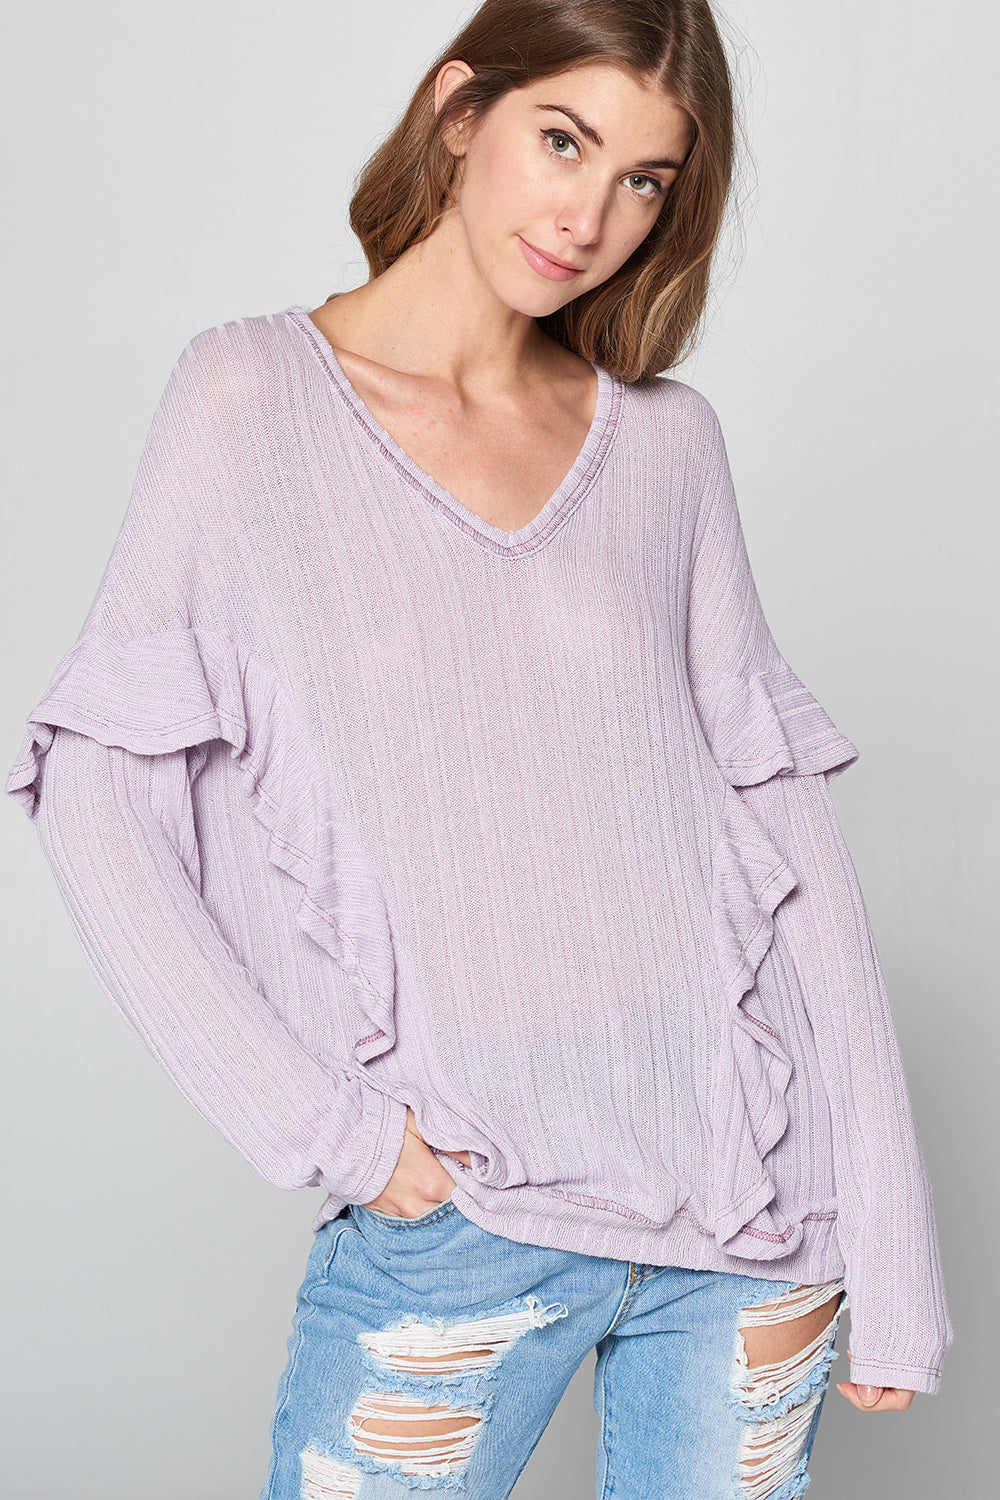 Spring Dreaming Pullover, Unclassified - Lola Cerina Boutique